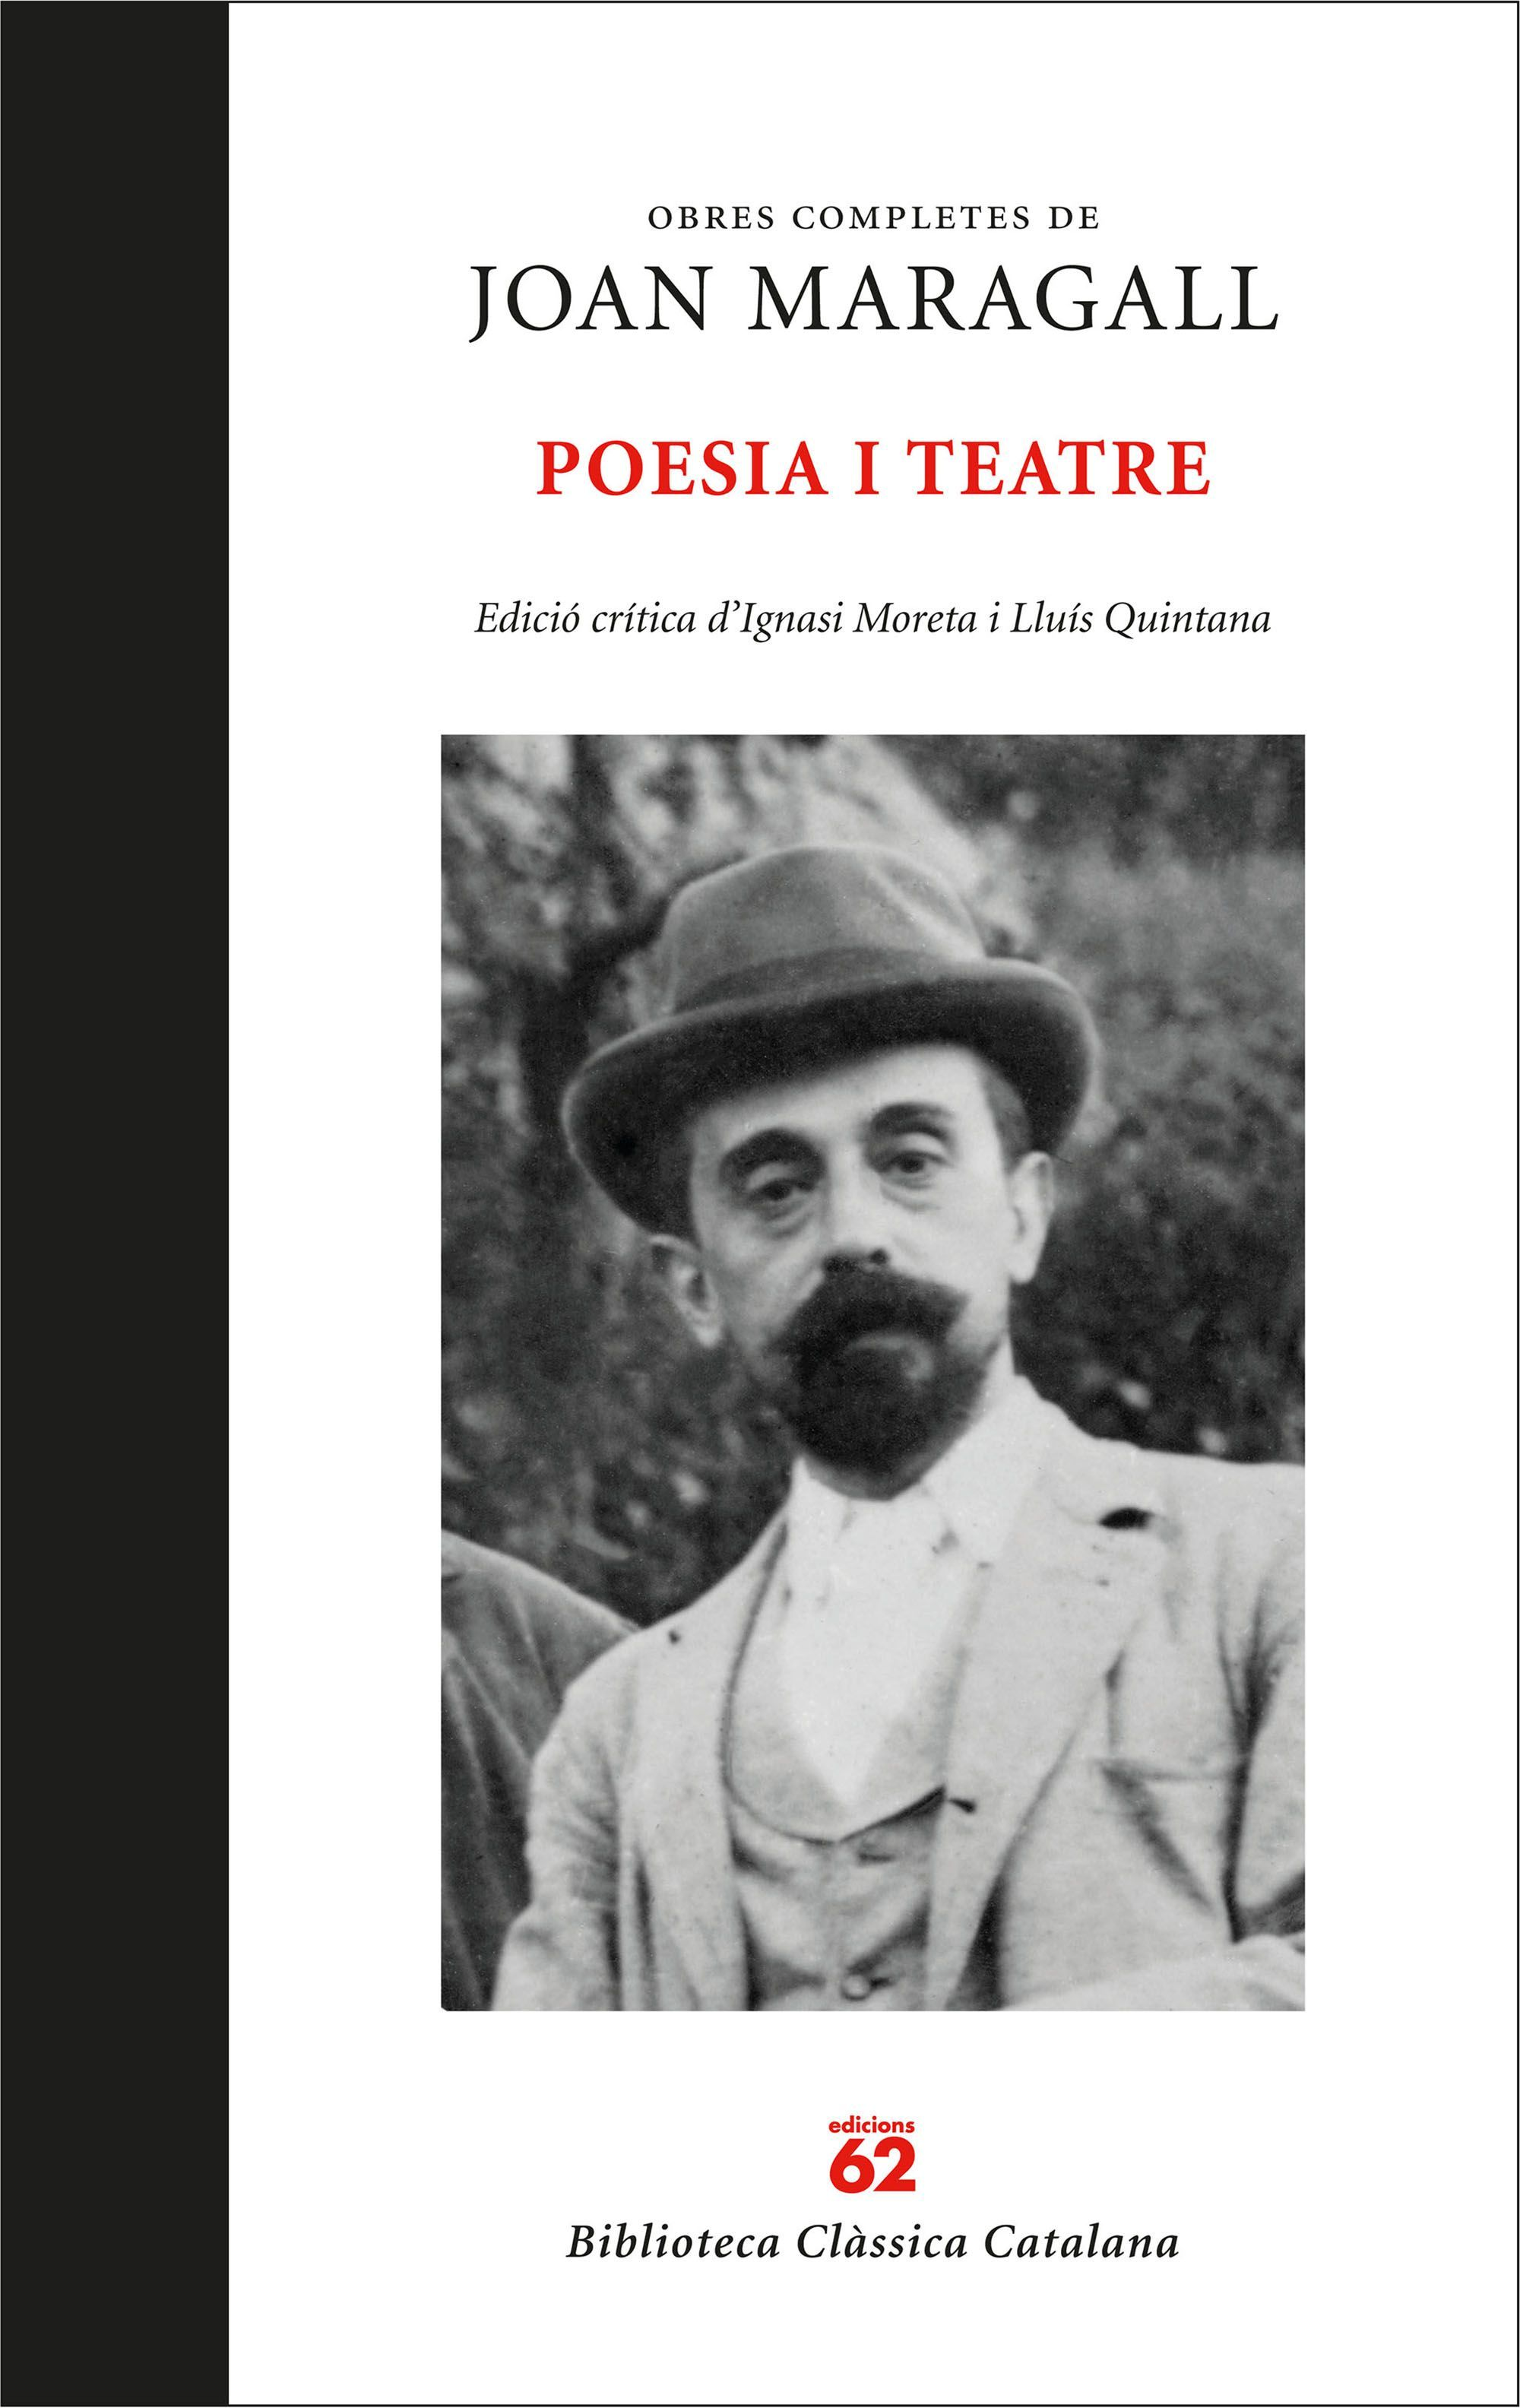 OBRES COMPLETES 1: POESIA I TEATRE